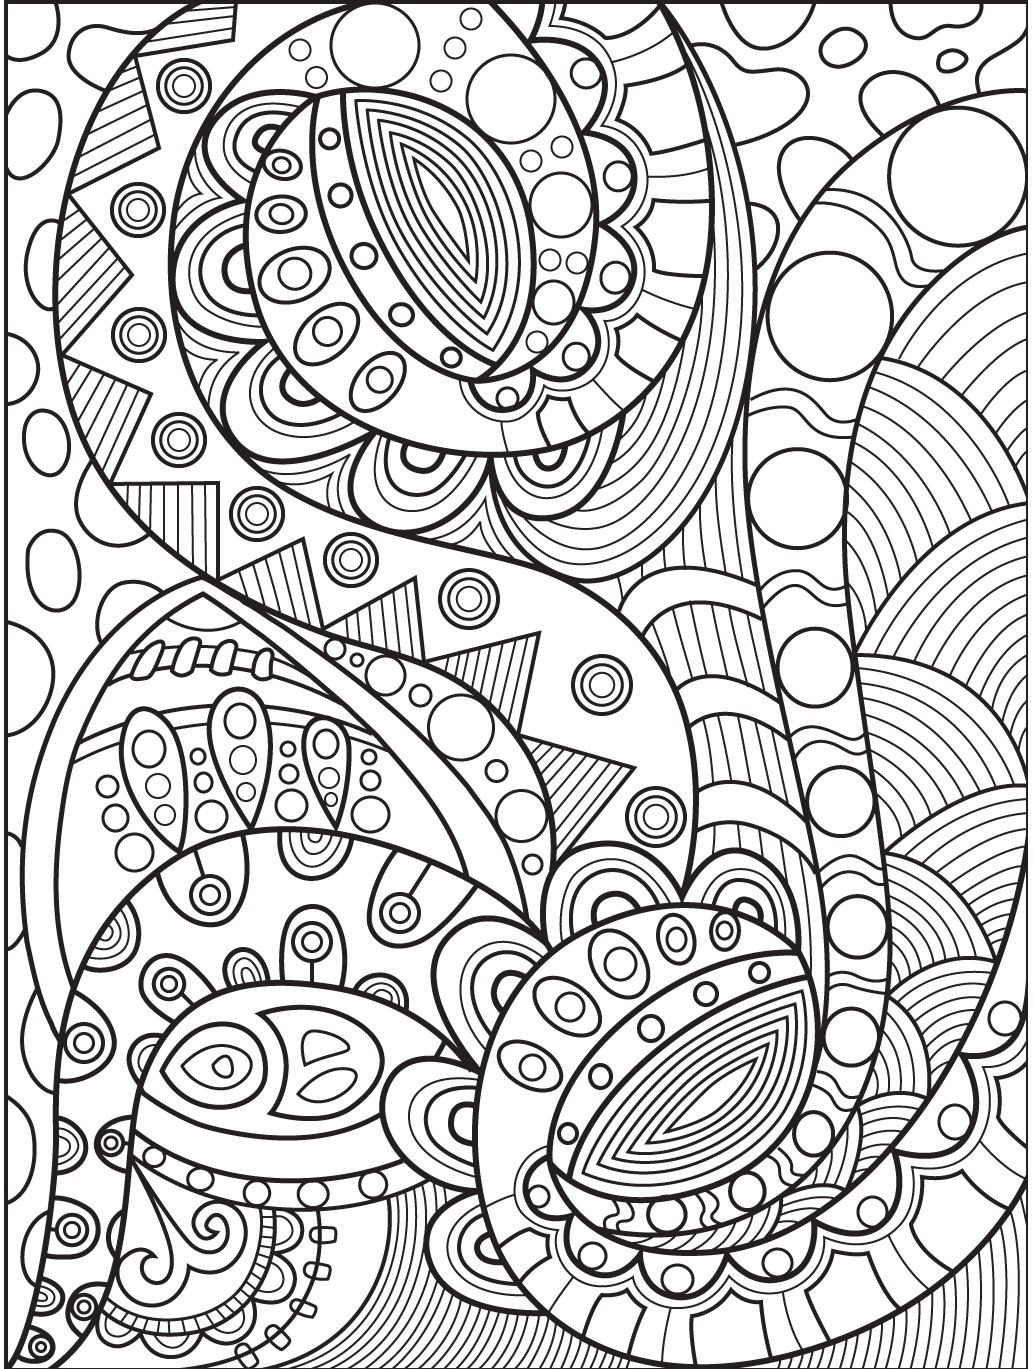 Abstract Coloring Page On Colorish Coloring Book App For Adults By Goodsofttech Abstract Coloring Pages Geometric Coloring Pages Mandala Coloring Pages